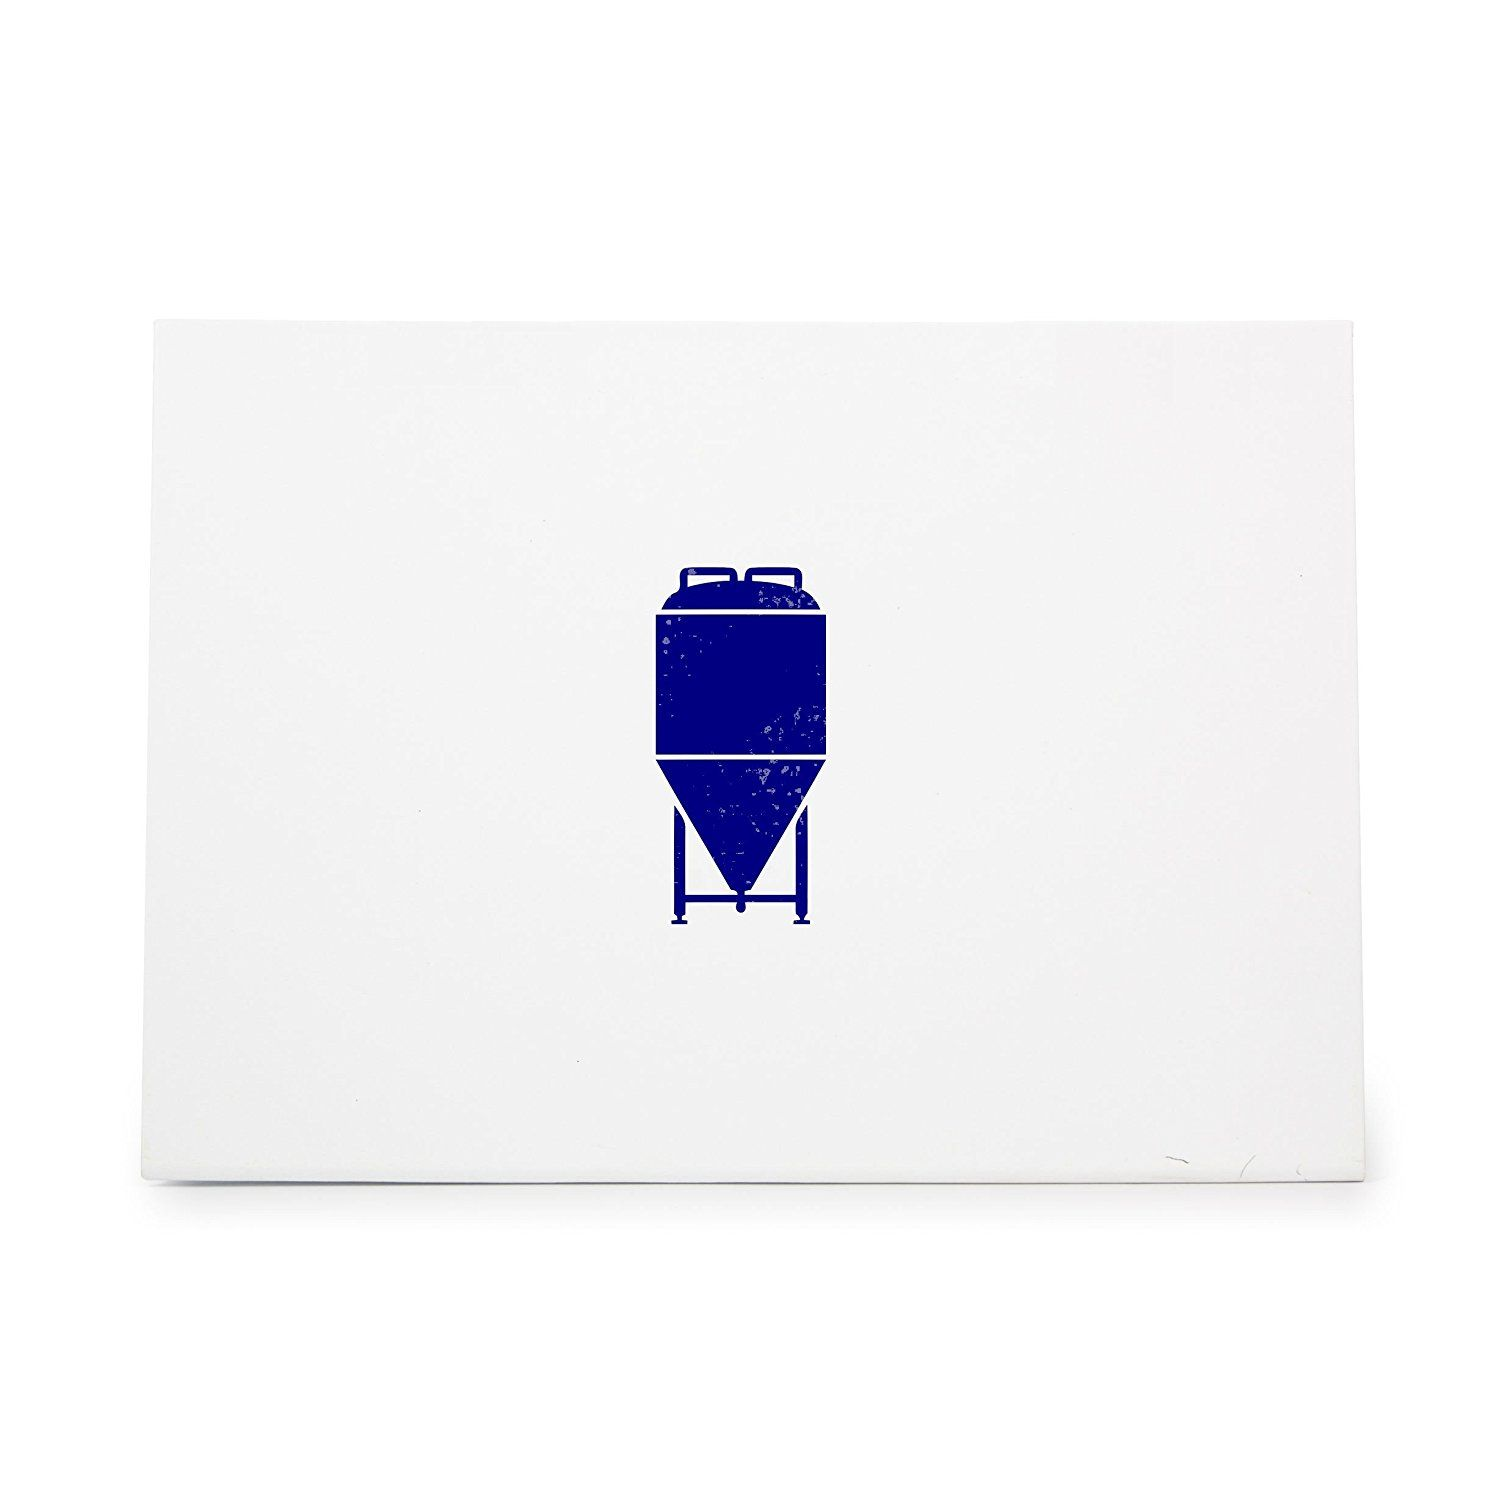 Amazon Card Making Part - 36: Conical Fermenter Malt Hops Homebrew Style Rubber Stamp Shape Great For  Scrapbooking, Crafts, Card Making. - For Him Coupon